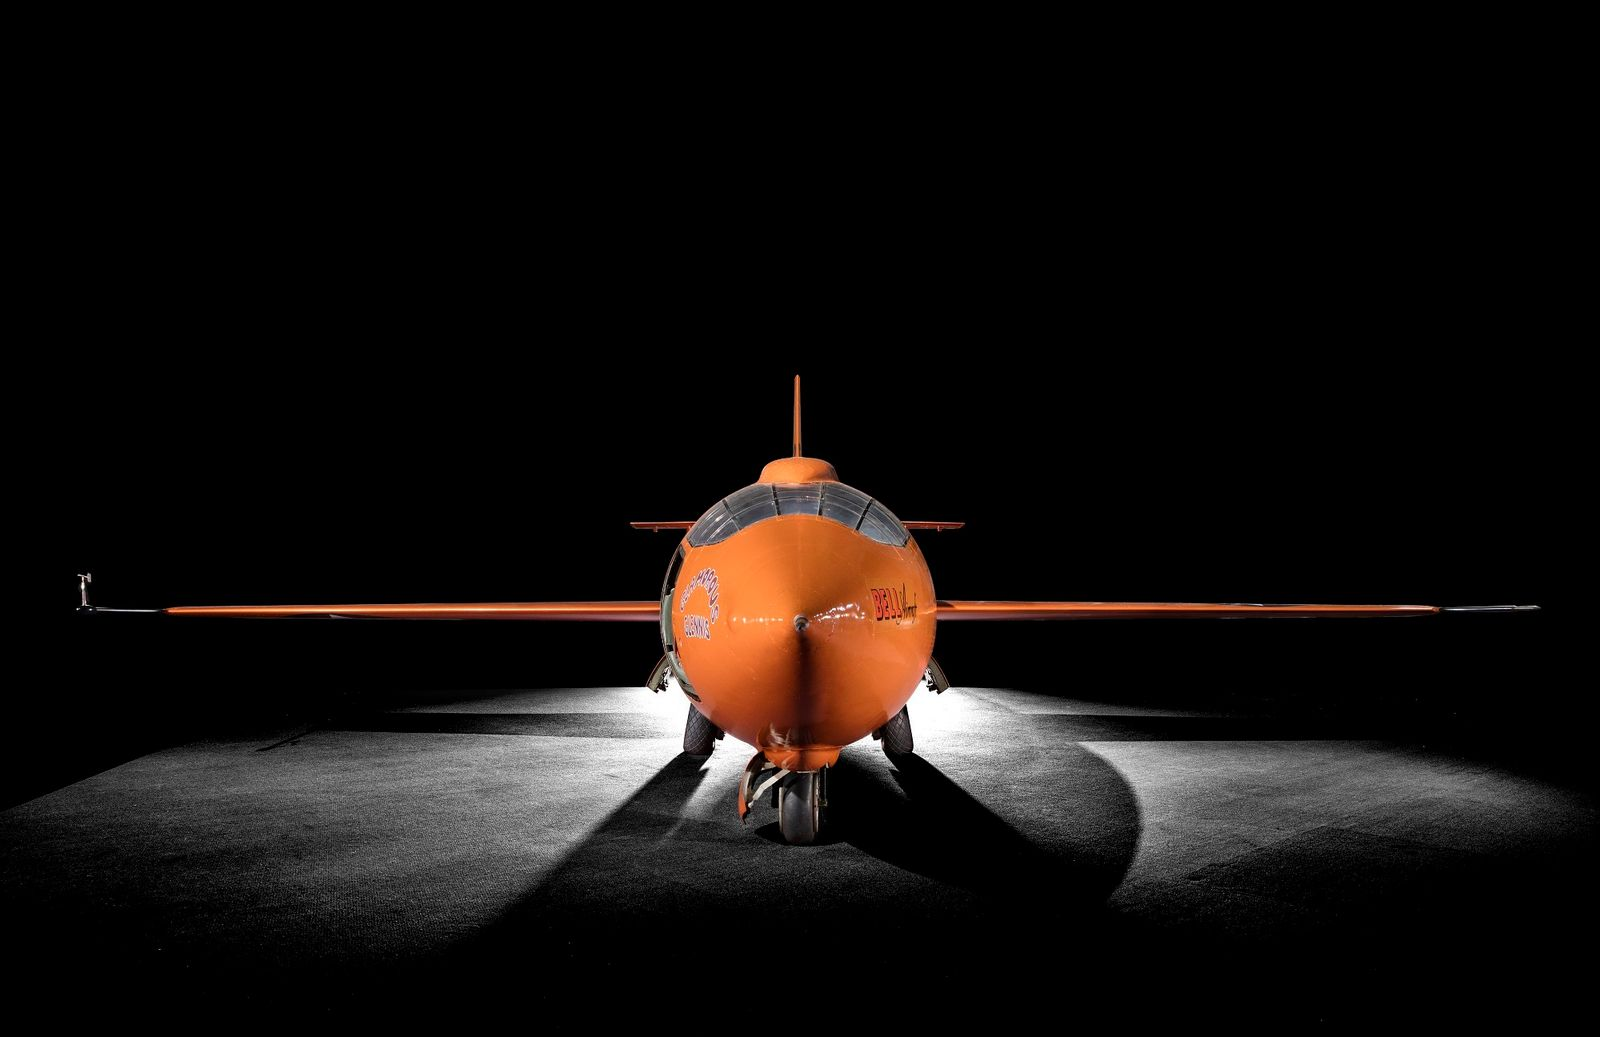 The Bell X-1, piloted by Chuck Yeager, was the first plane to break the sound barrier.